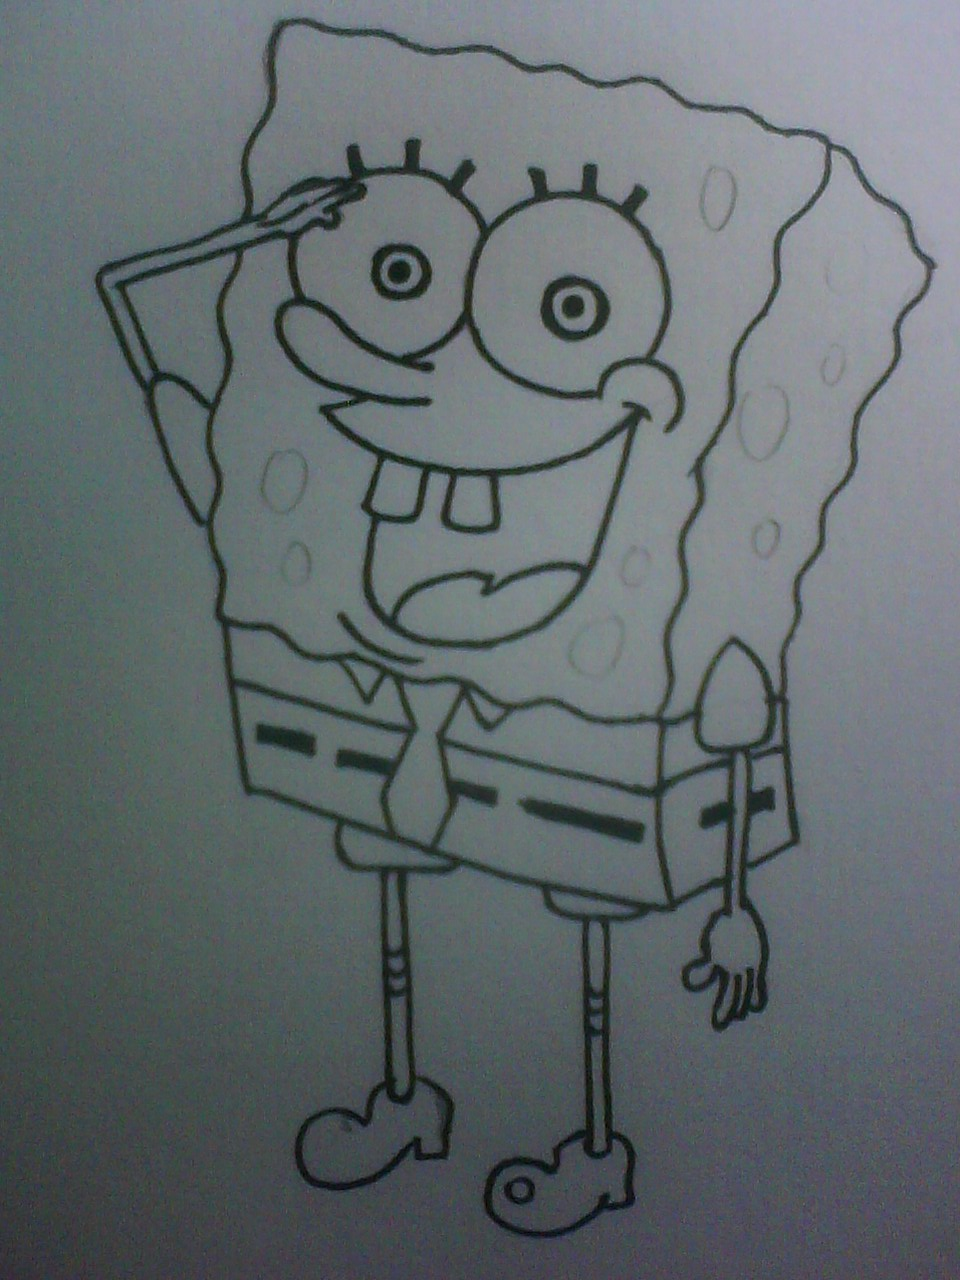 Menggambar Spongebob Squarepants  FLasholiX